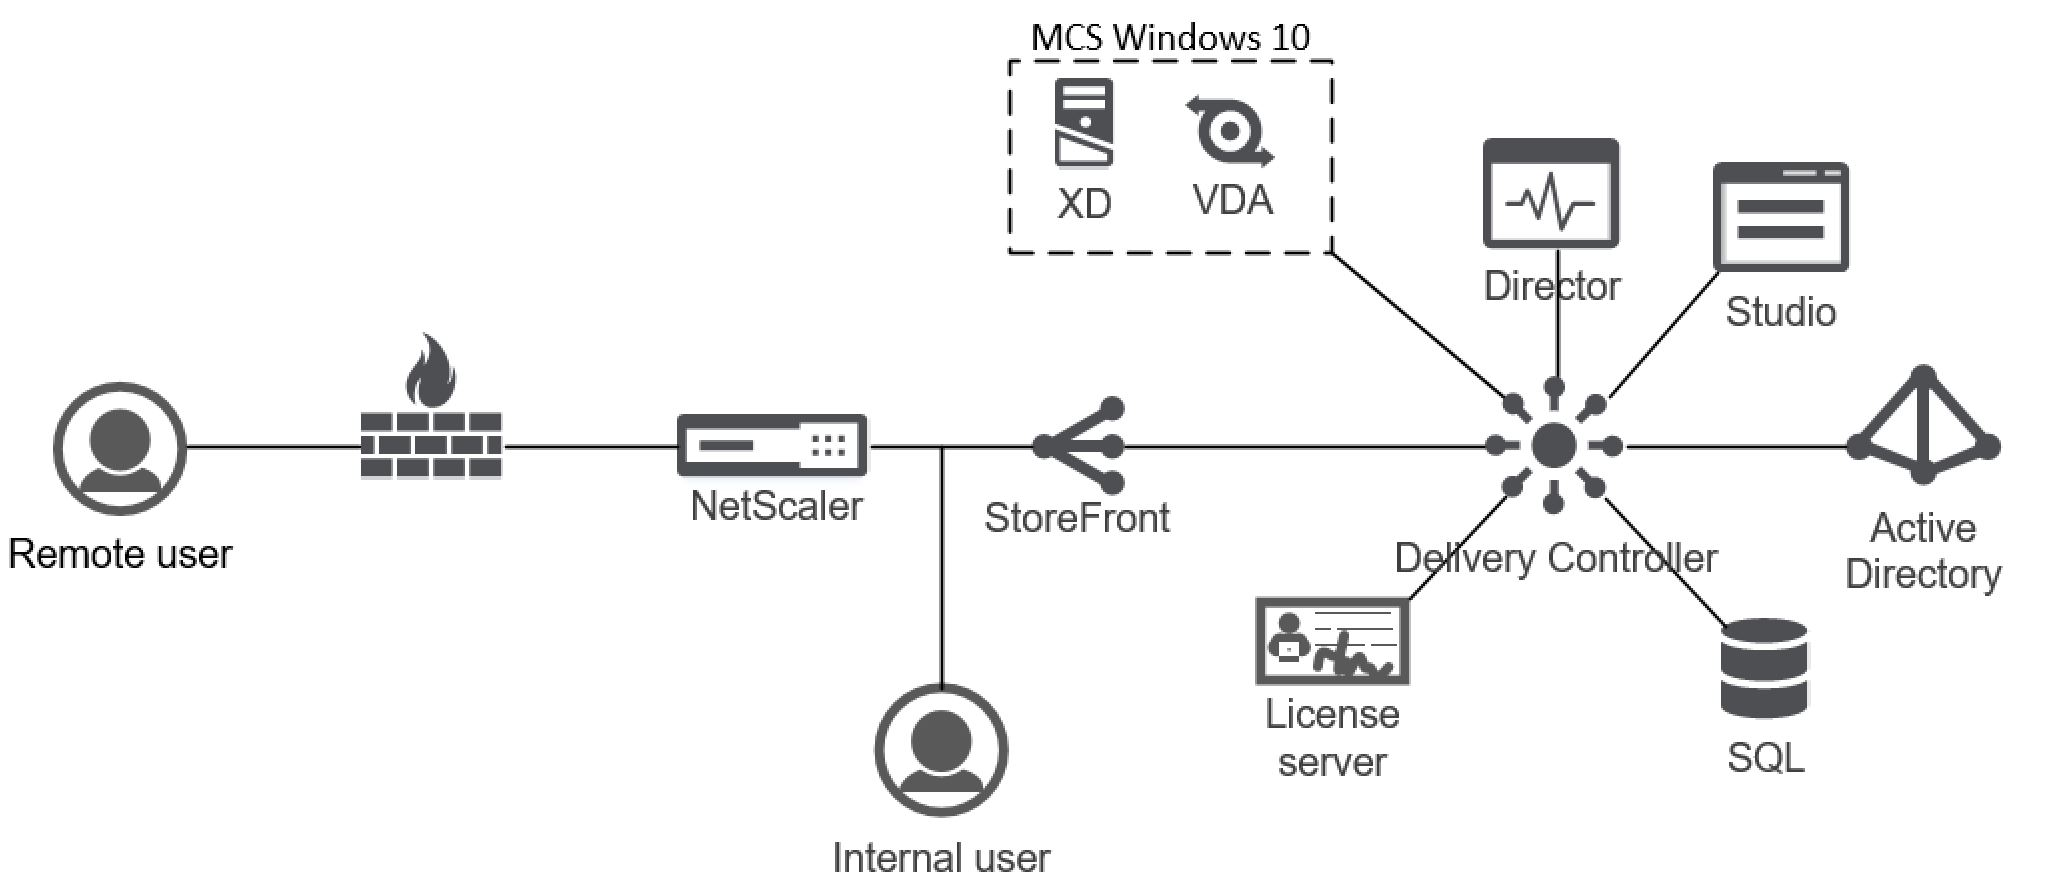 Install and Configure StoreFront 3 9, including the new NetScaler